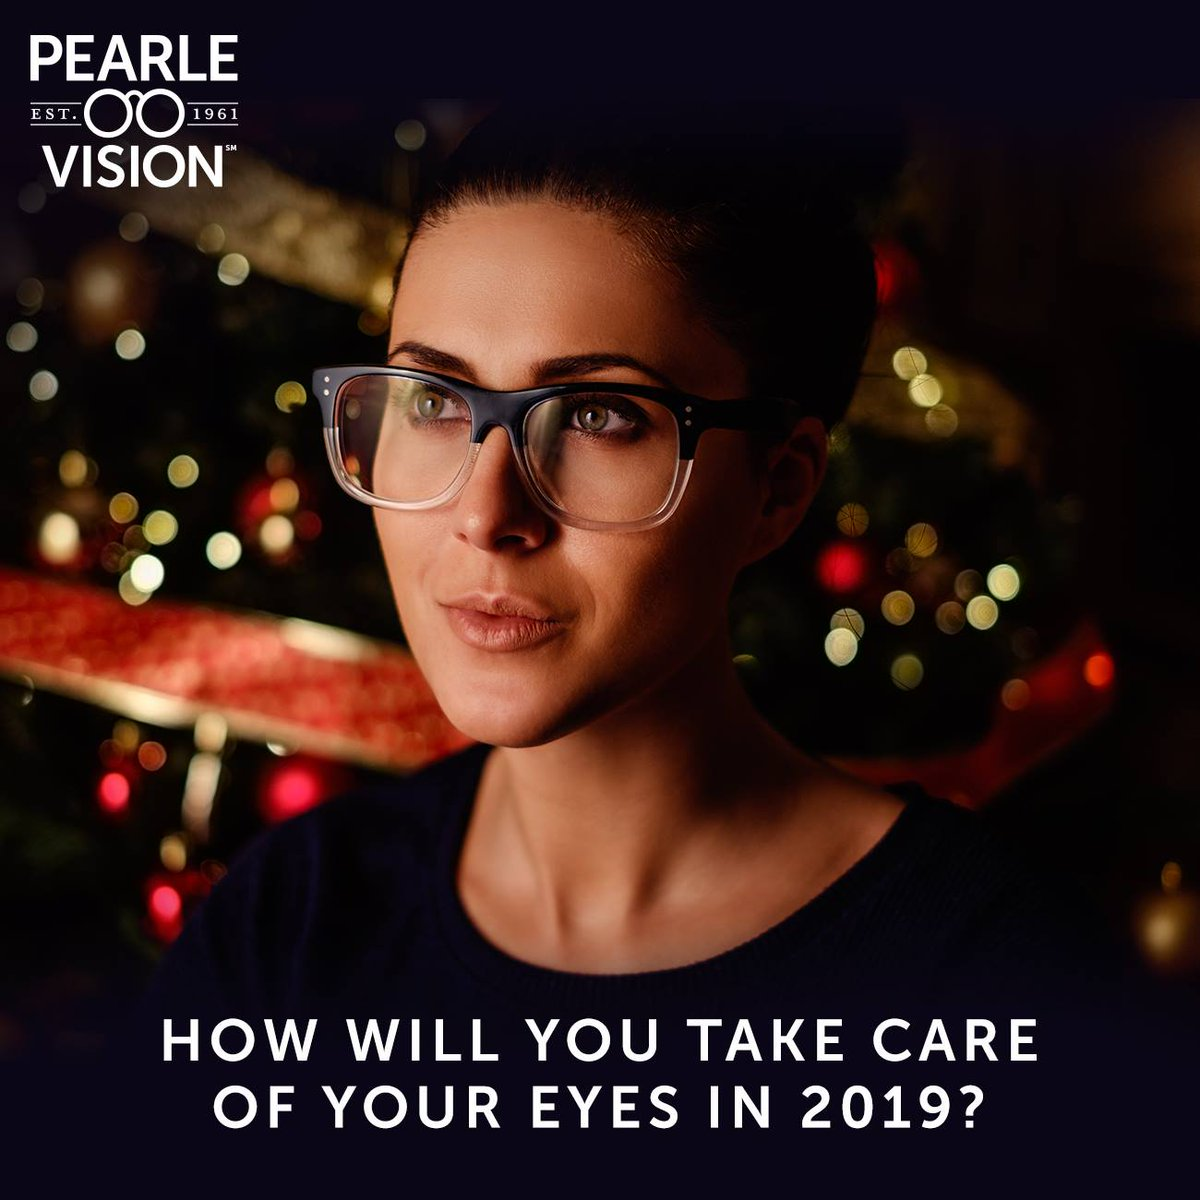 b5c4ee1155 Now that your vision benefits may have renewed